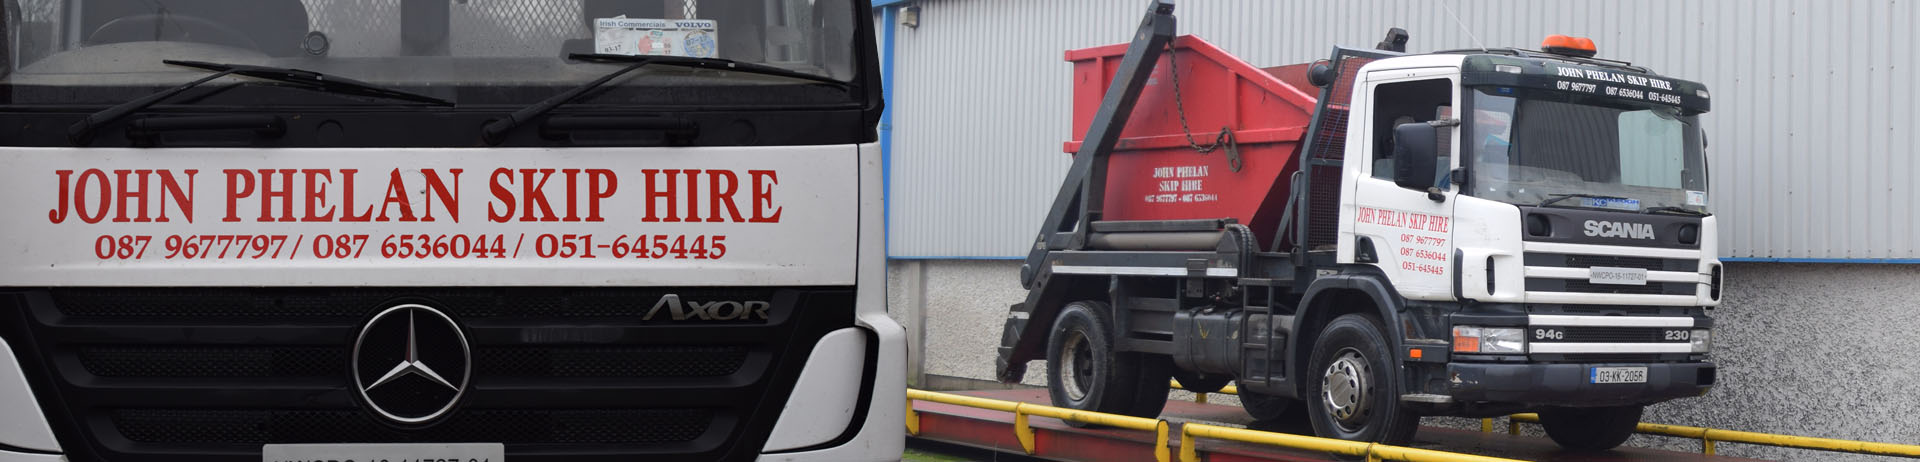 skip hire about us header